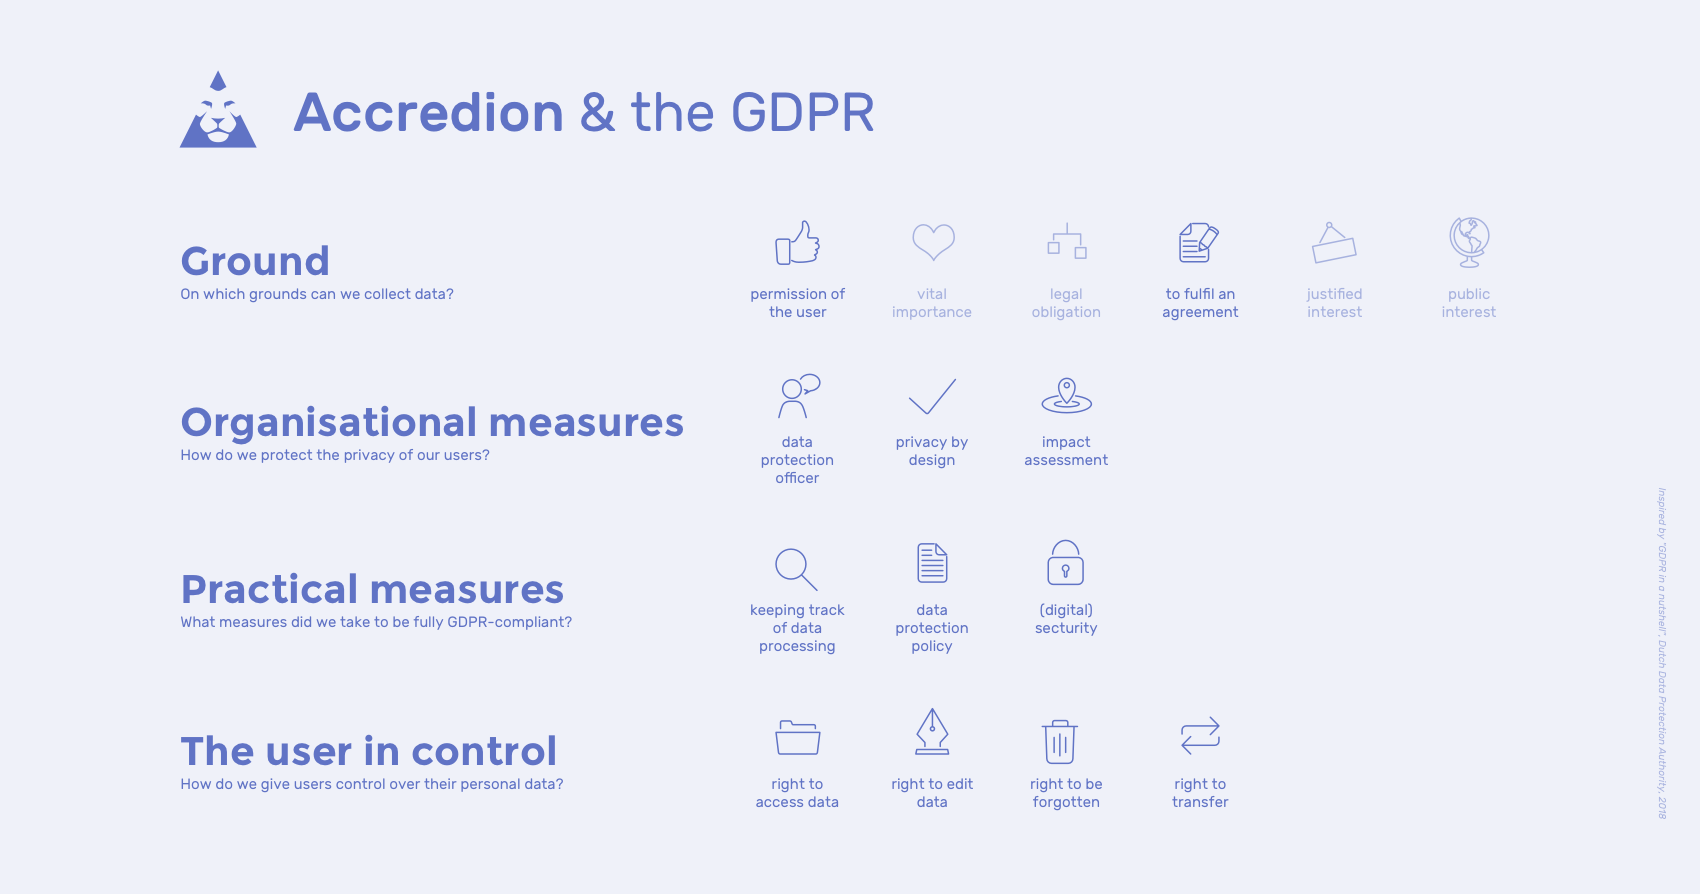 Accredion & the GDPR